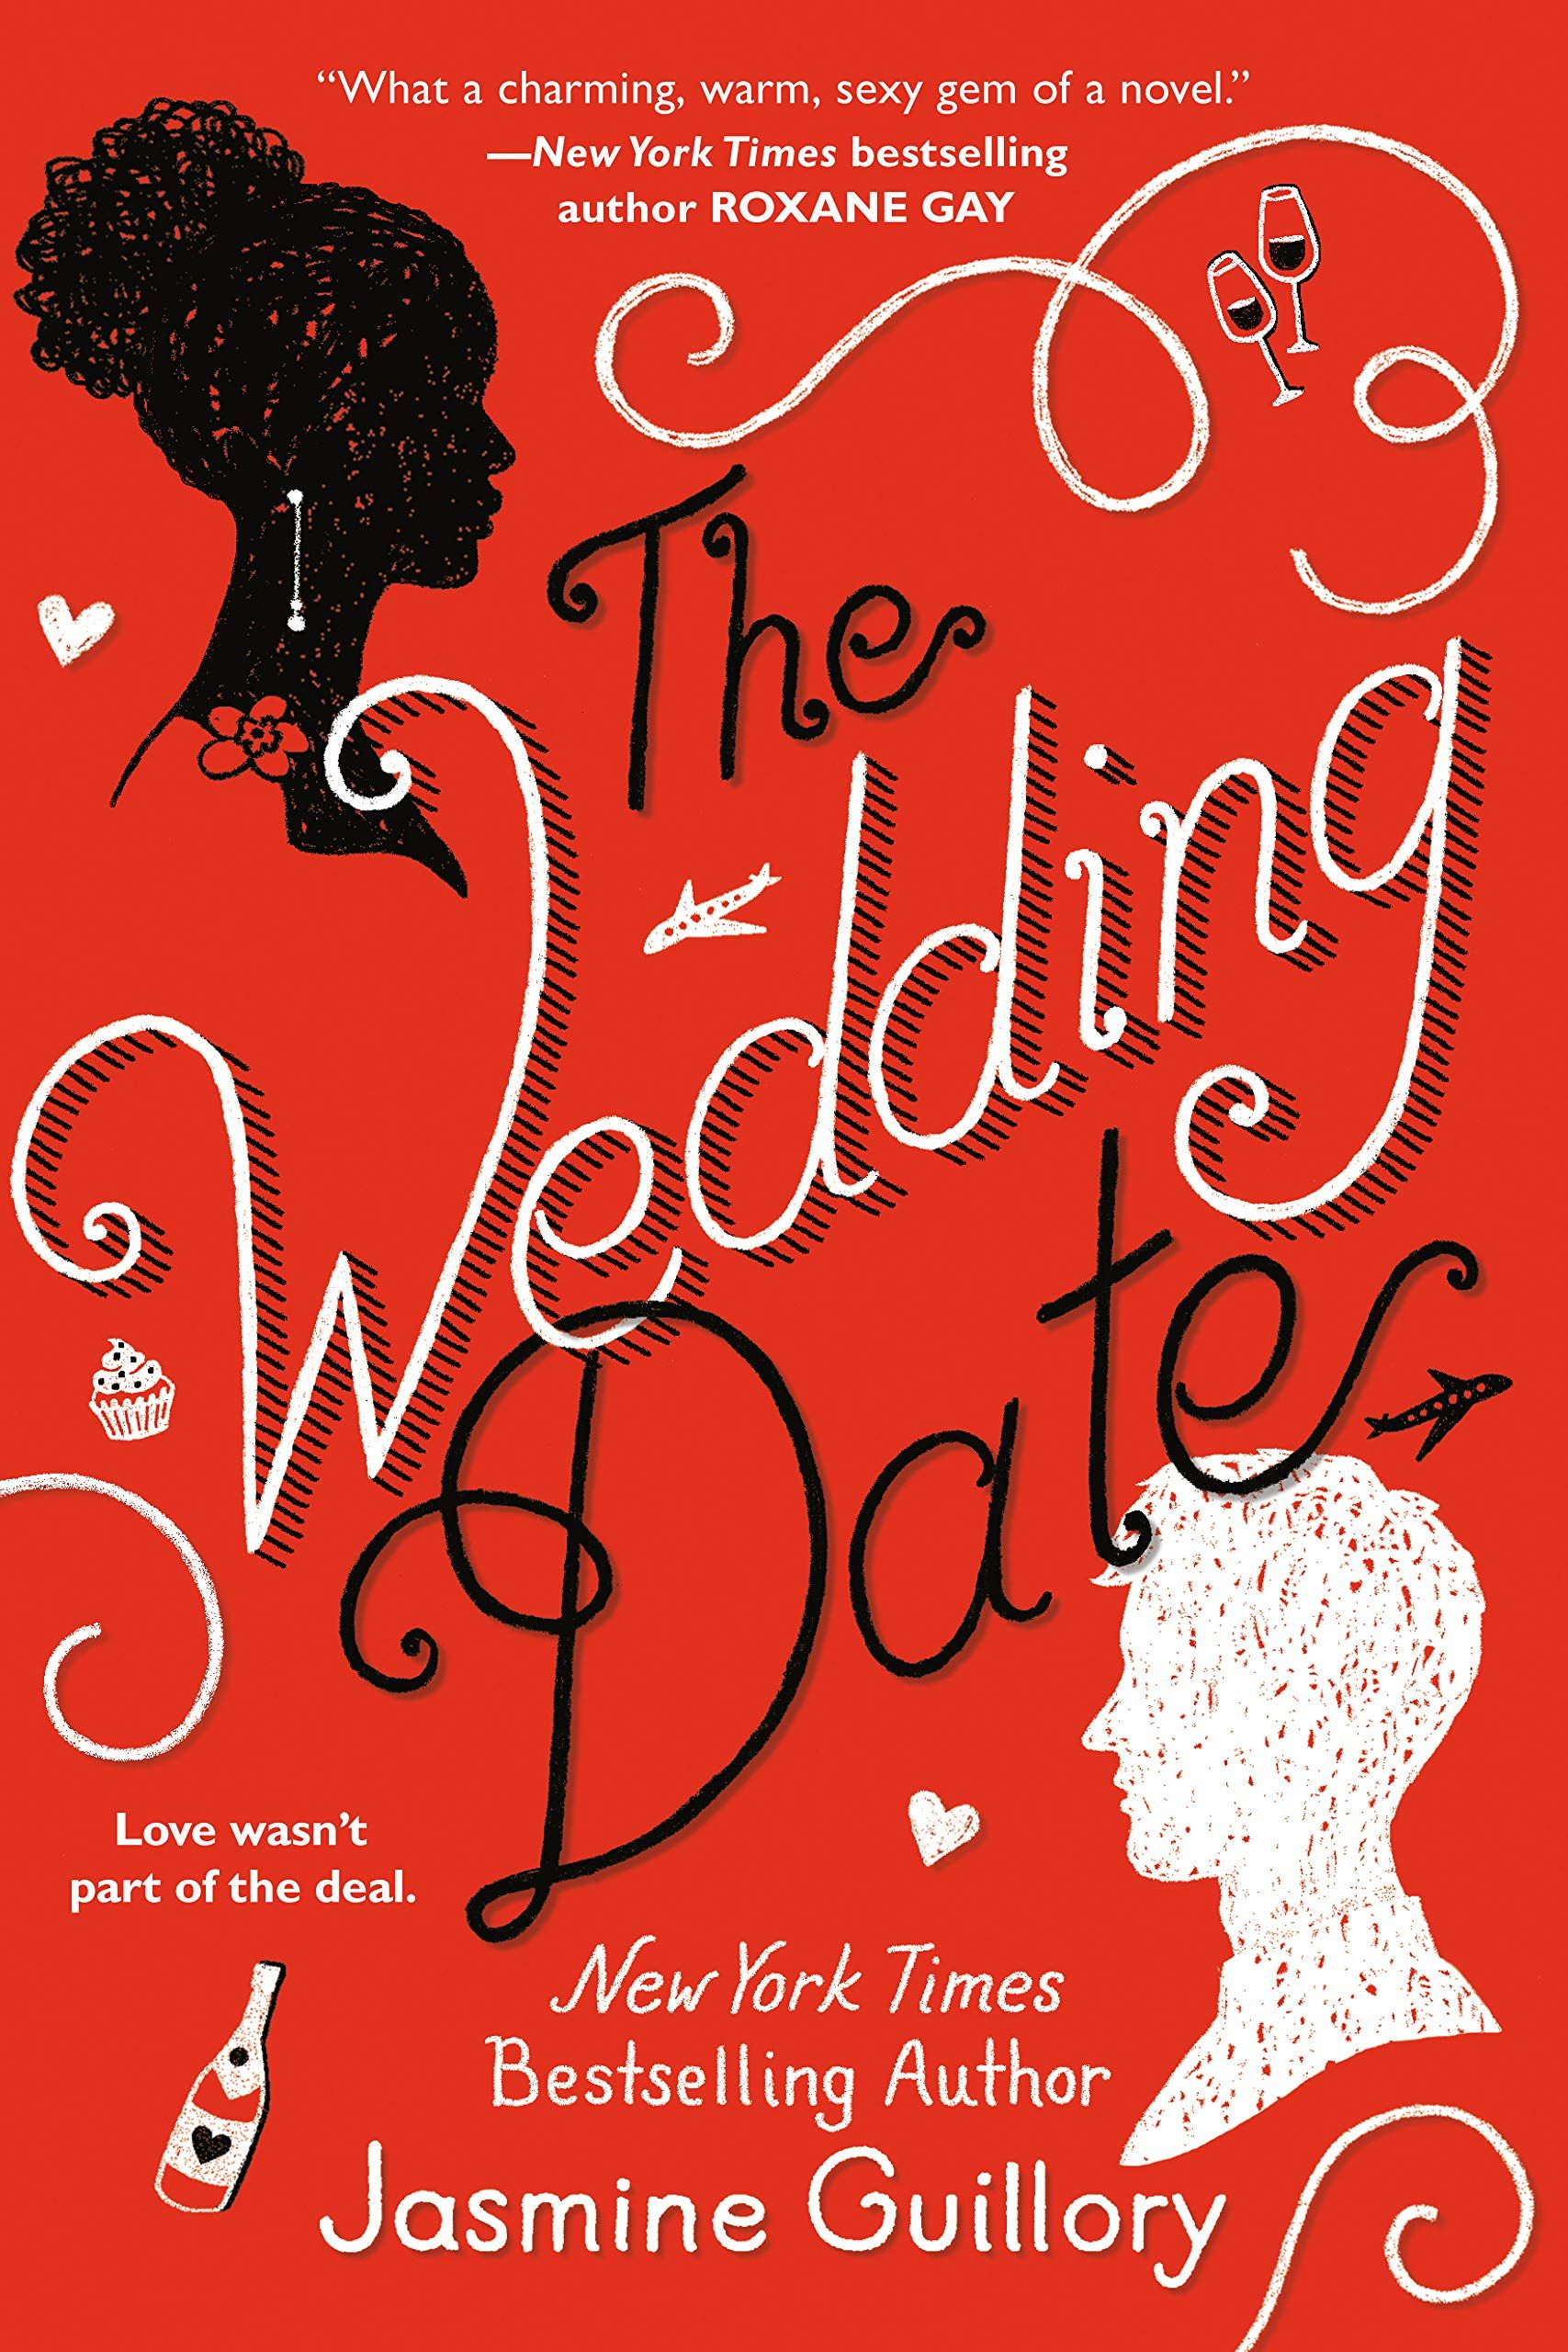 The Wedding Date Books by black authors, Good books